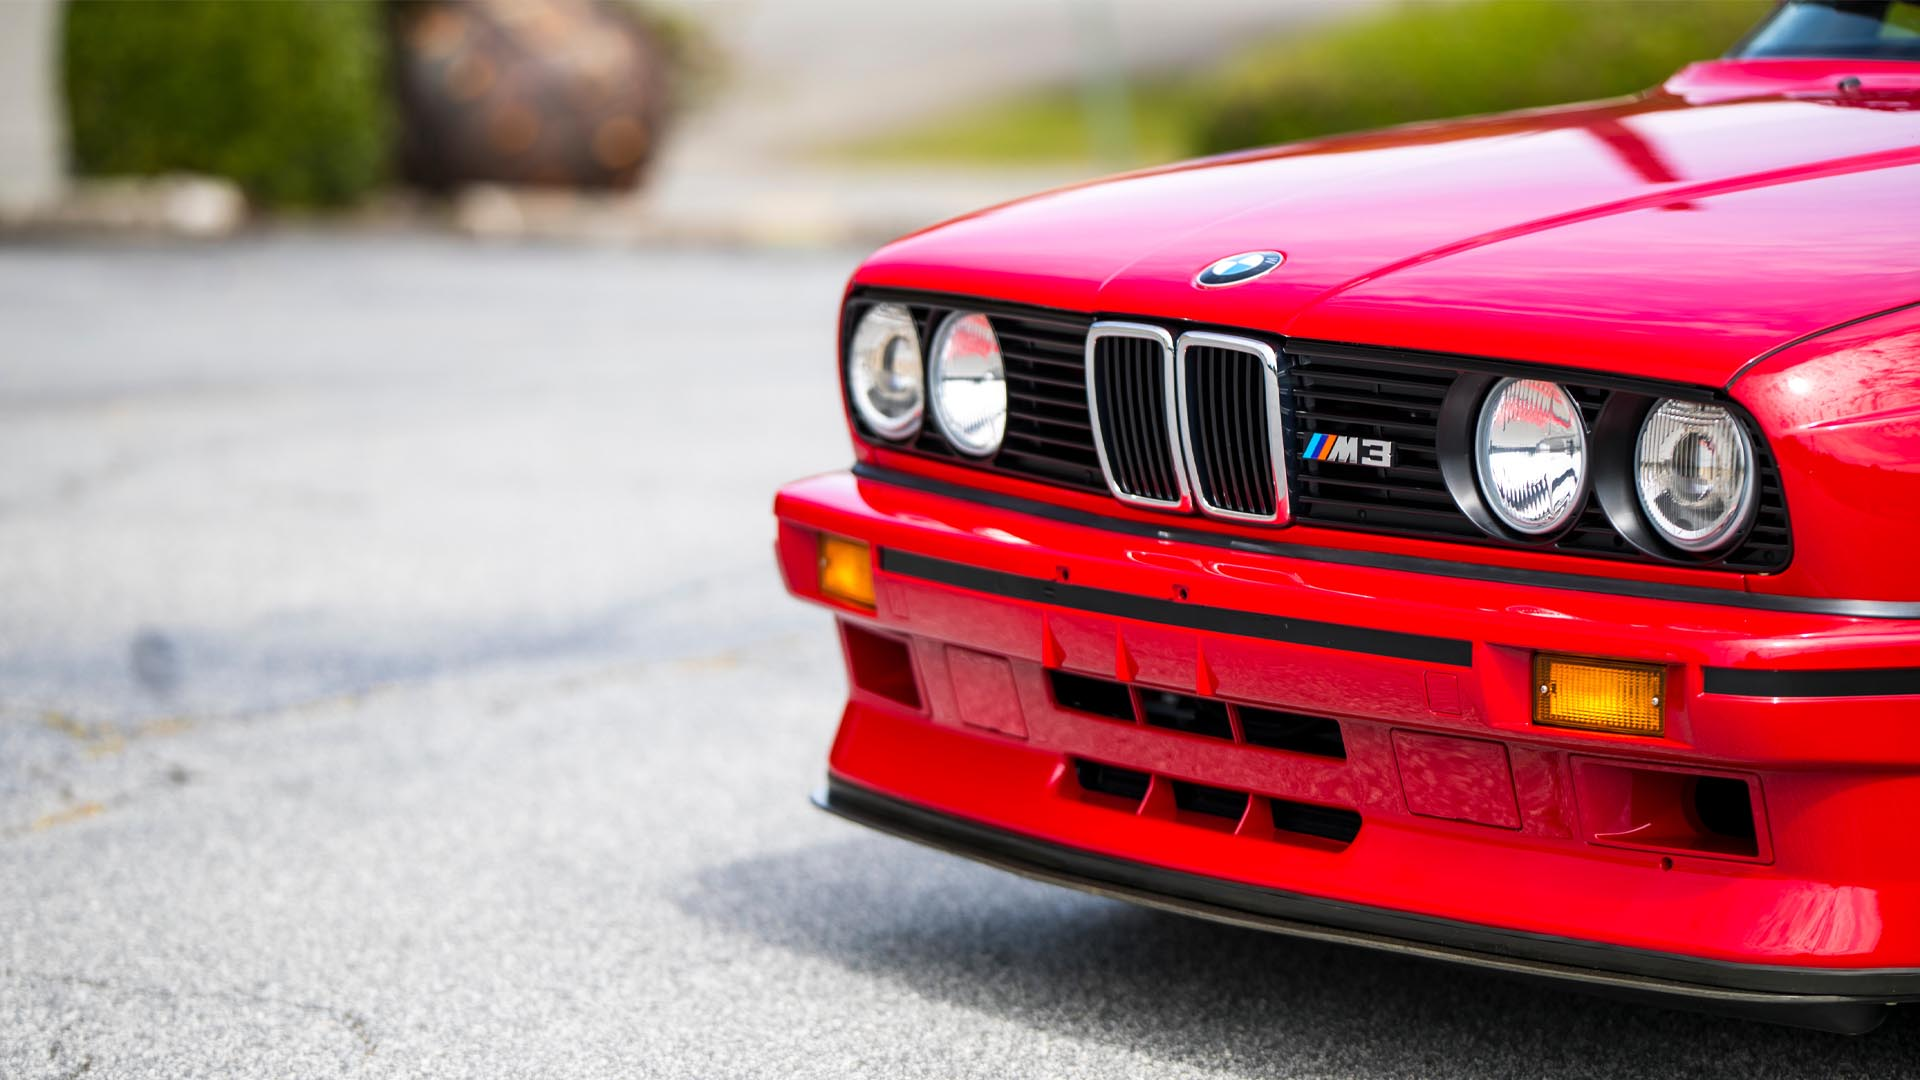 BMW Chassis Codes Explained